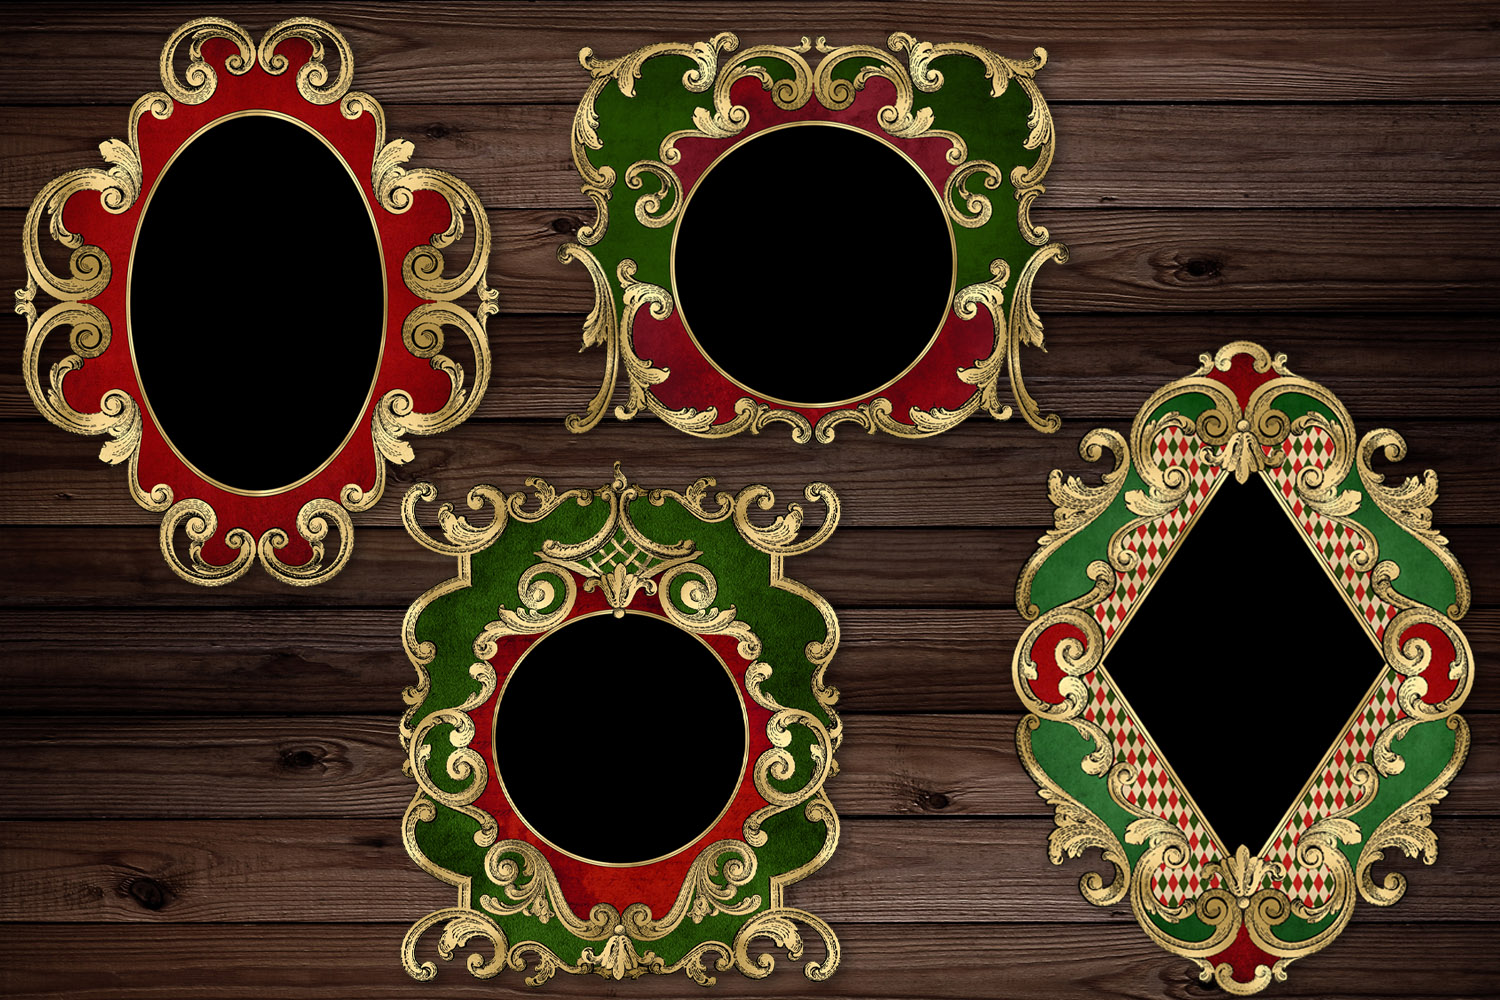 Ornate Christmas Frames Clipart example image 3